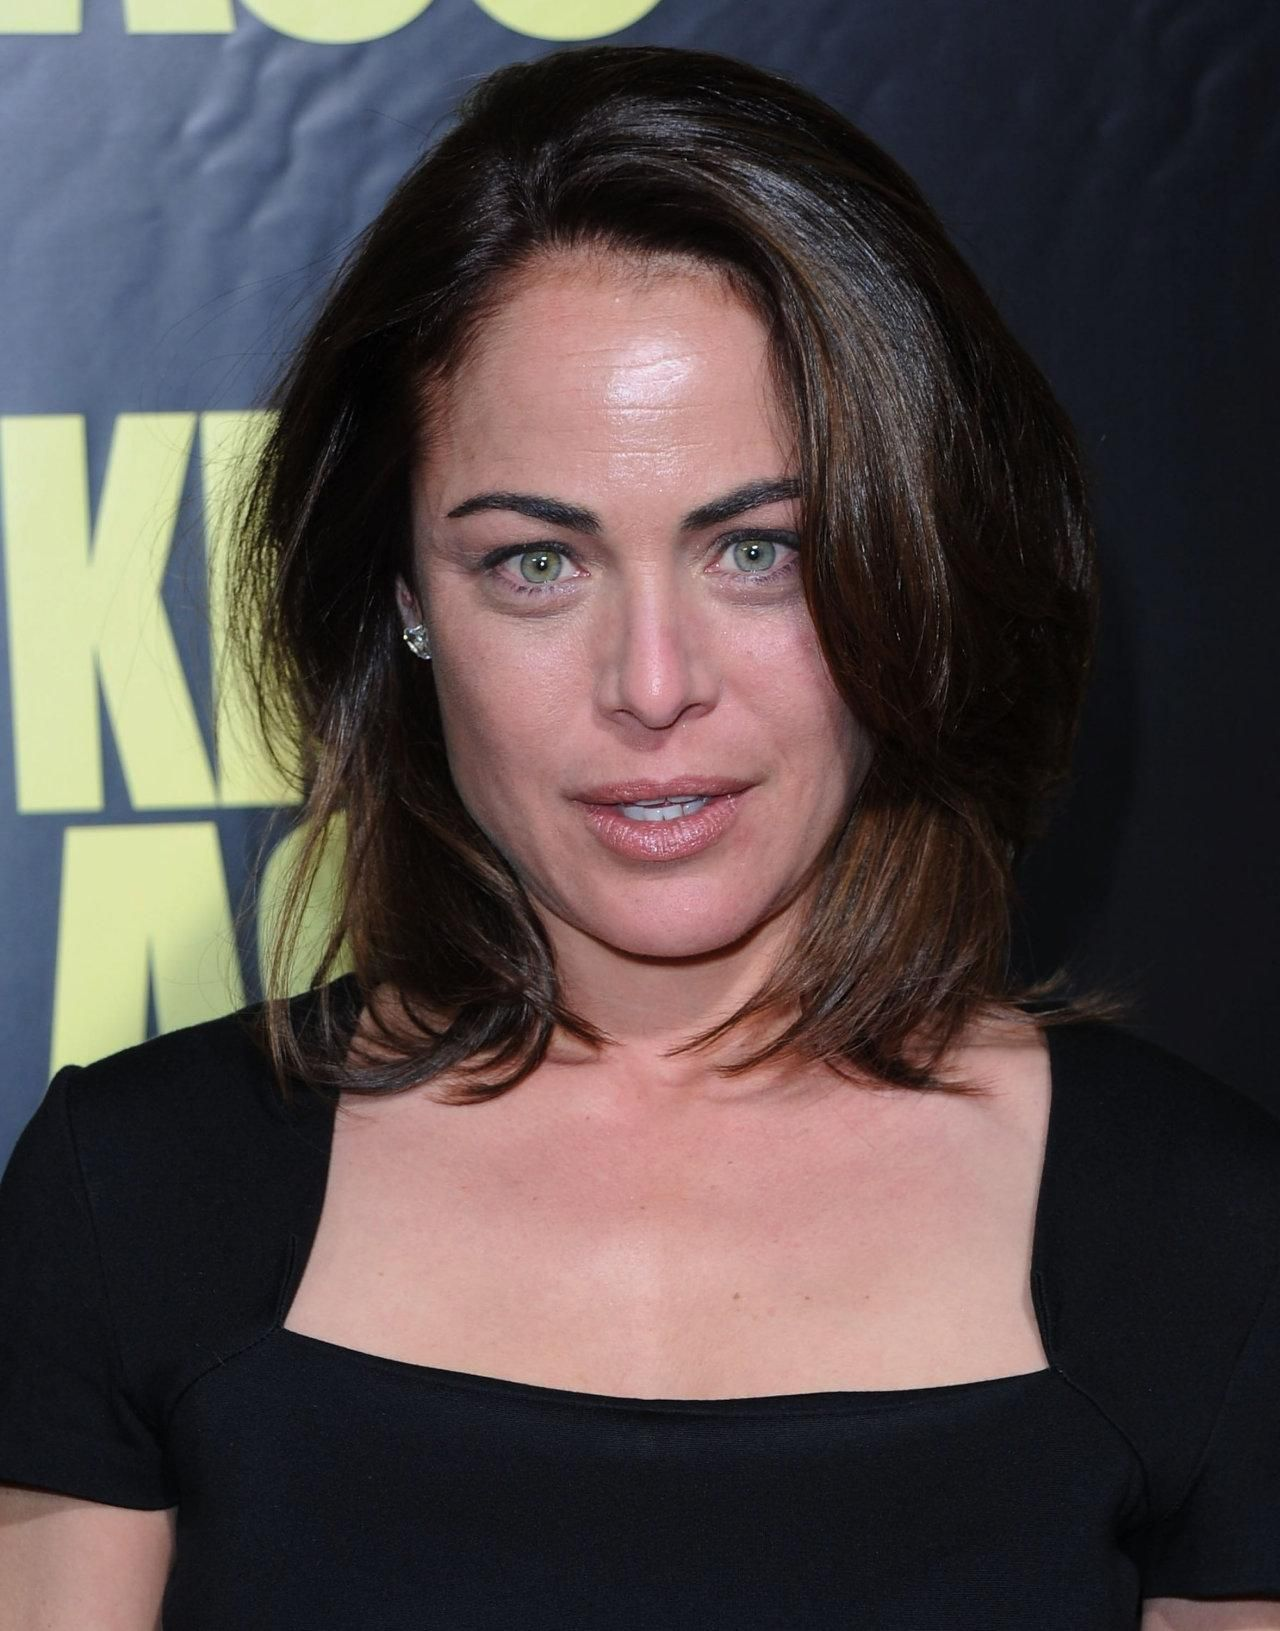 Yancy butler pictures to pin on pinterest - Tv Actress Yancy Butler